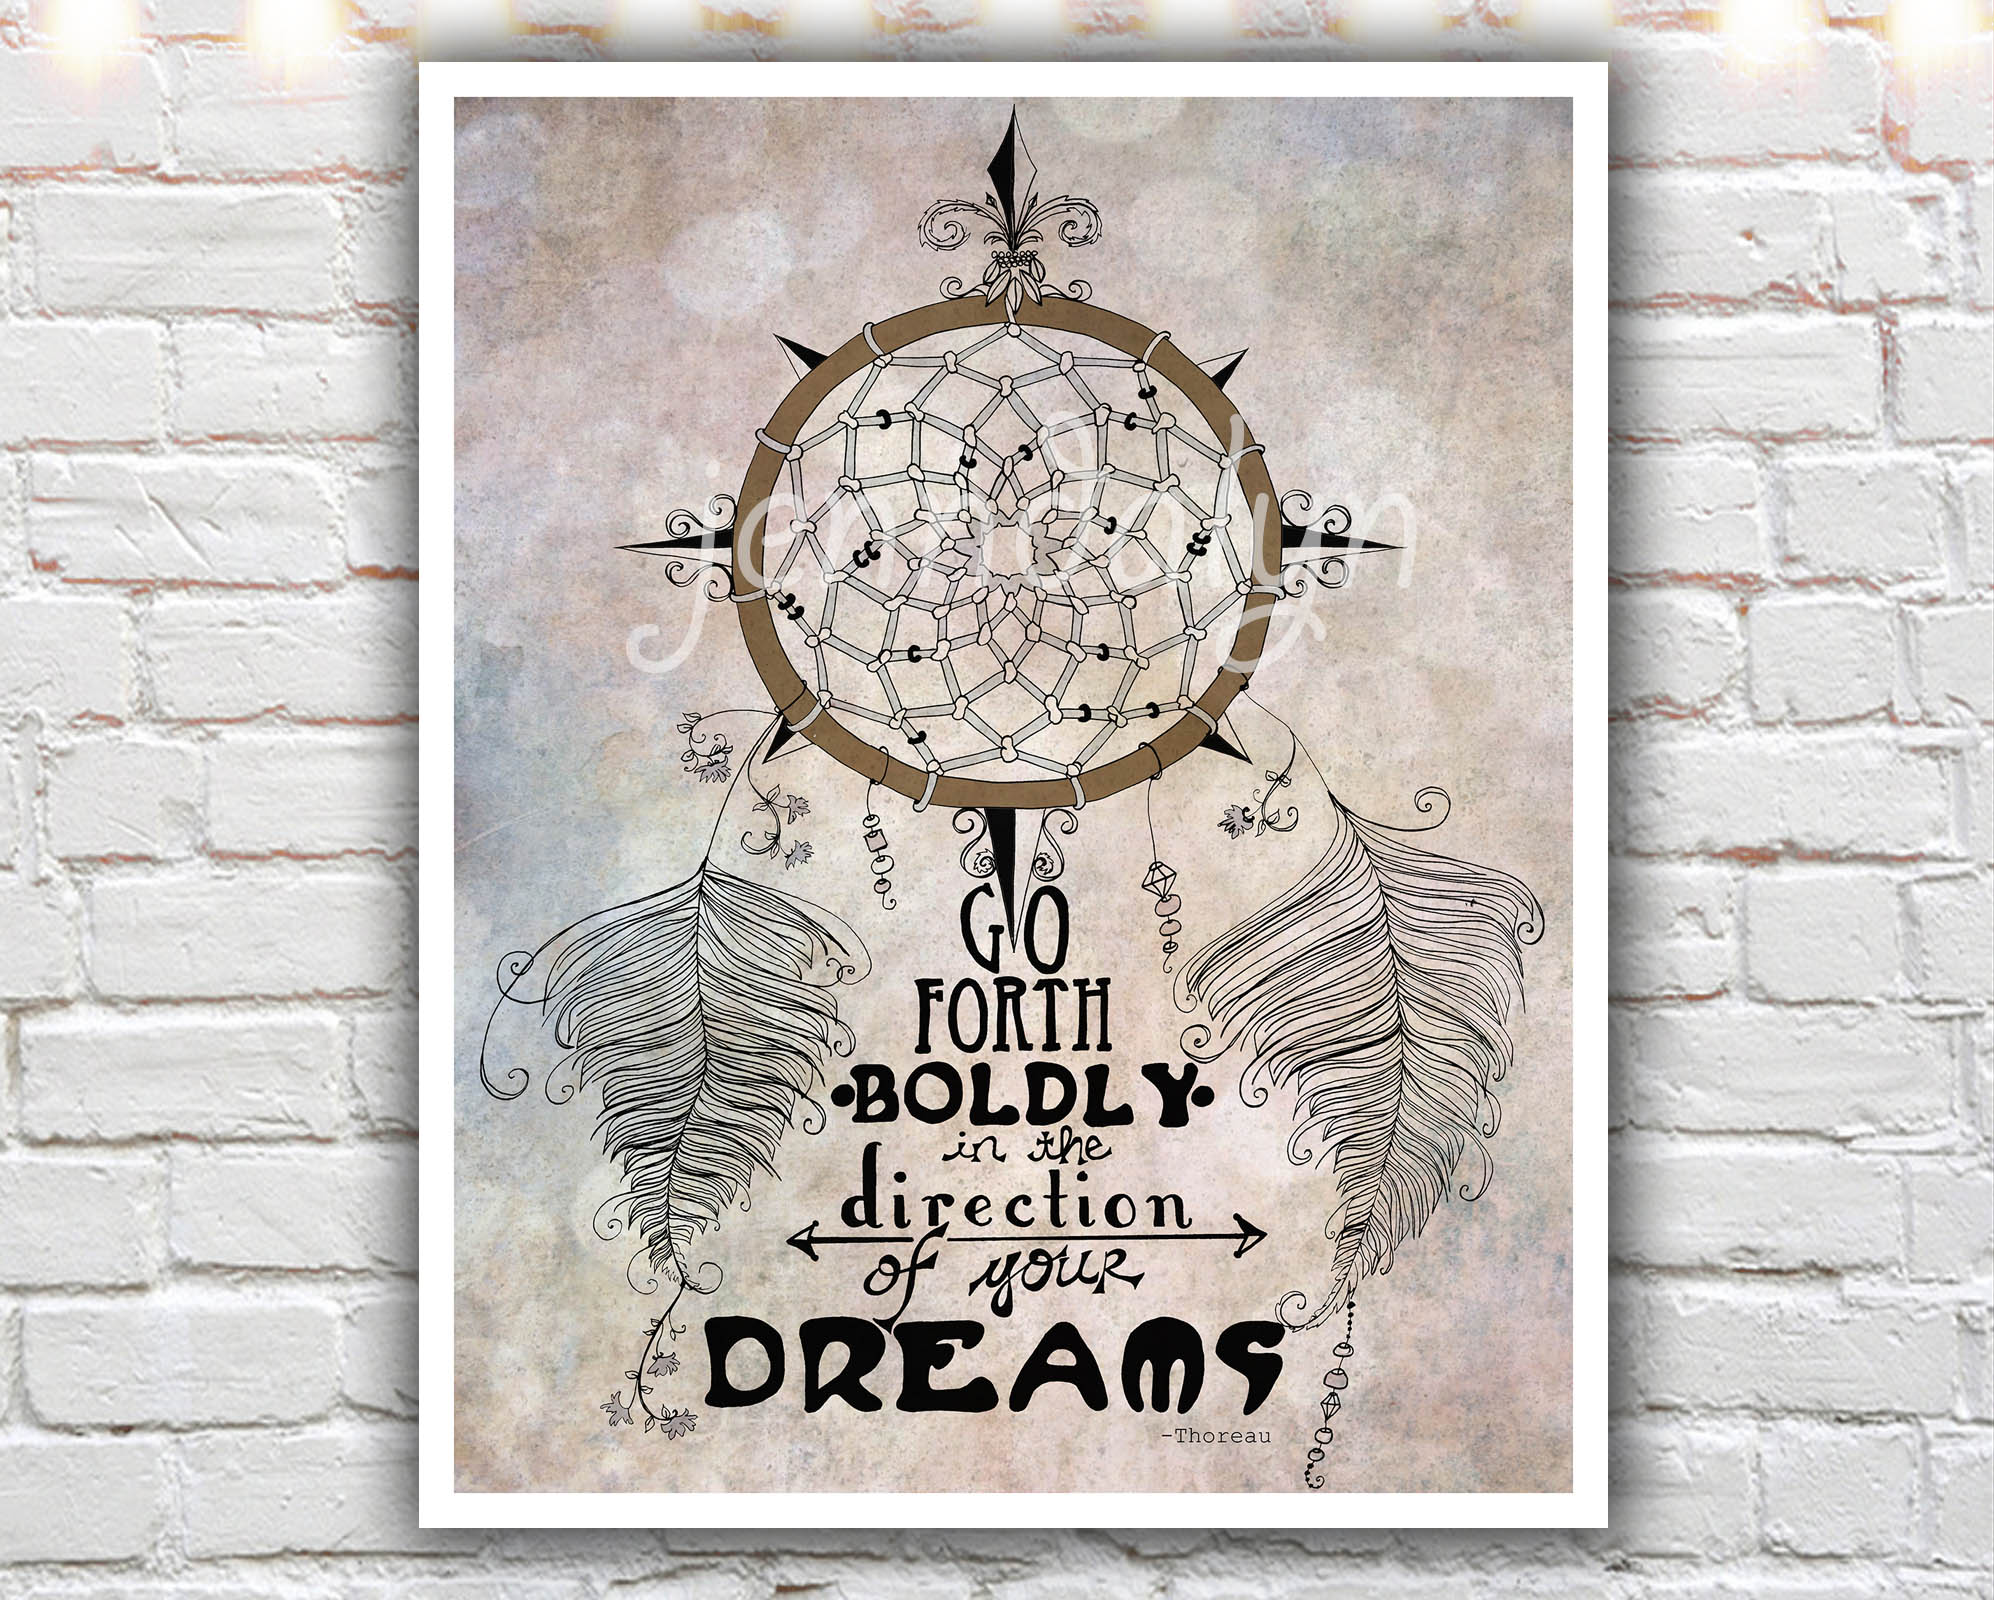 Quotes That Go With Dream Catchers Go Forth Boldly 40 x 40 paper print dream catcher thoreau 18